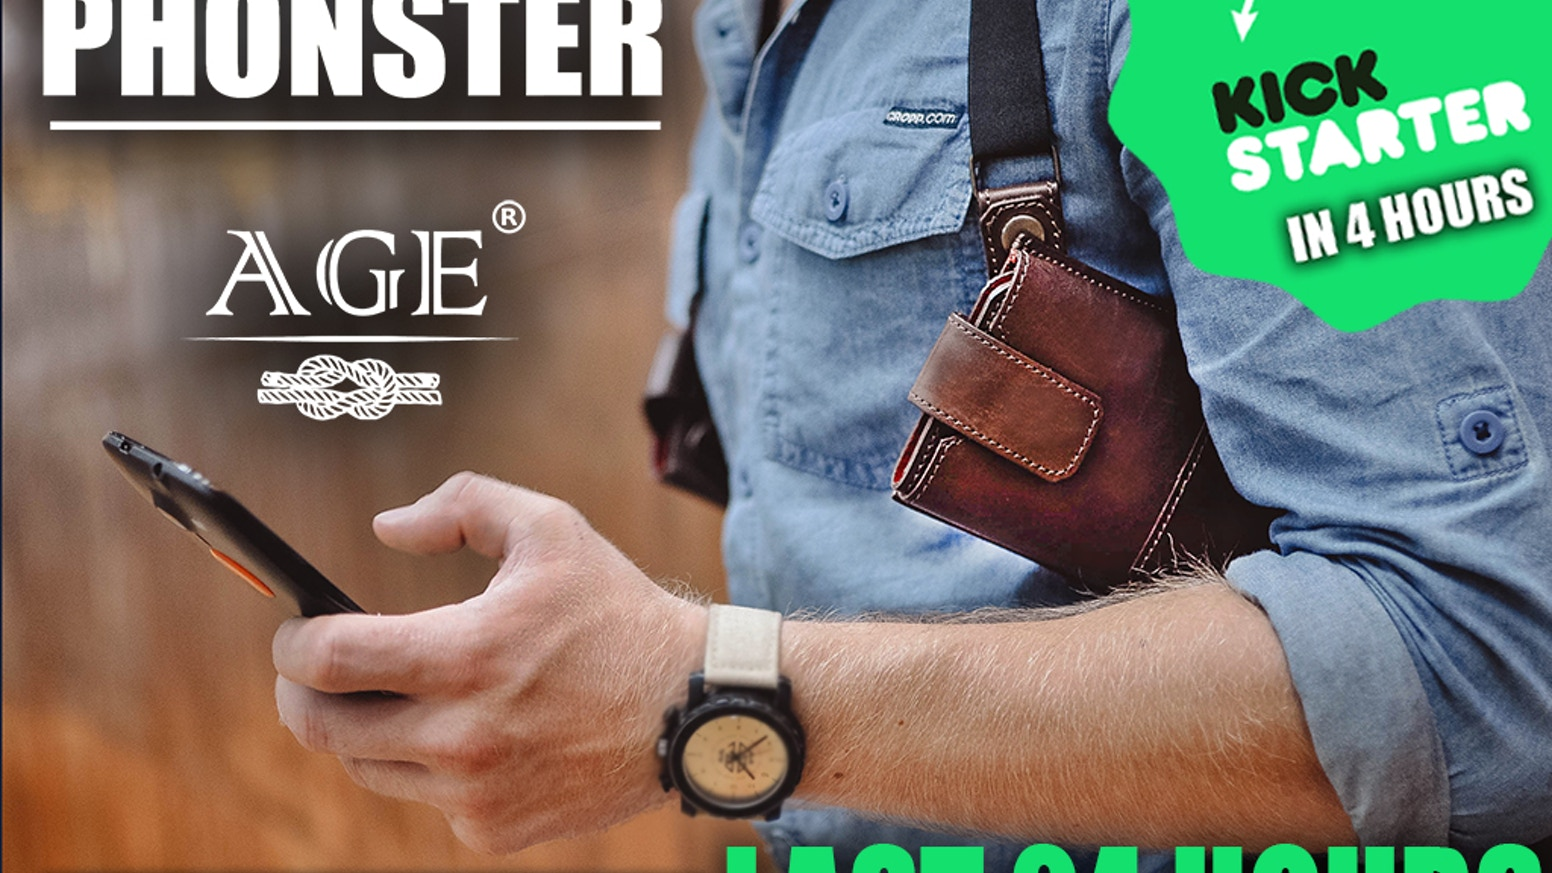 Premium handcrafted holster for your phone, wallet and keys. Feel absolutely free in your daily activity.